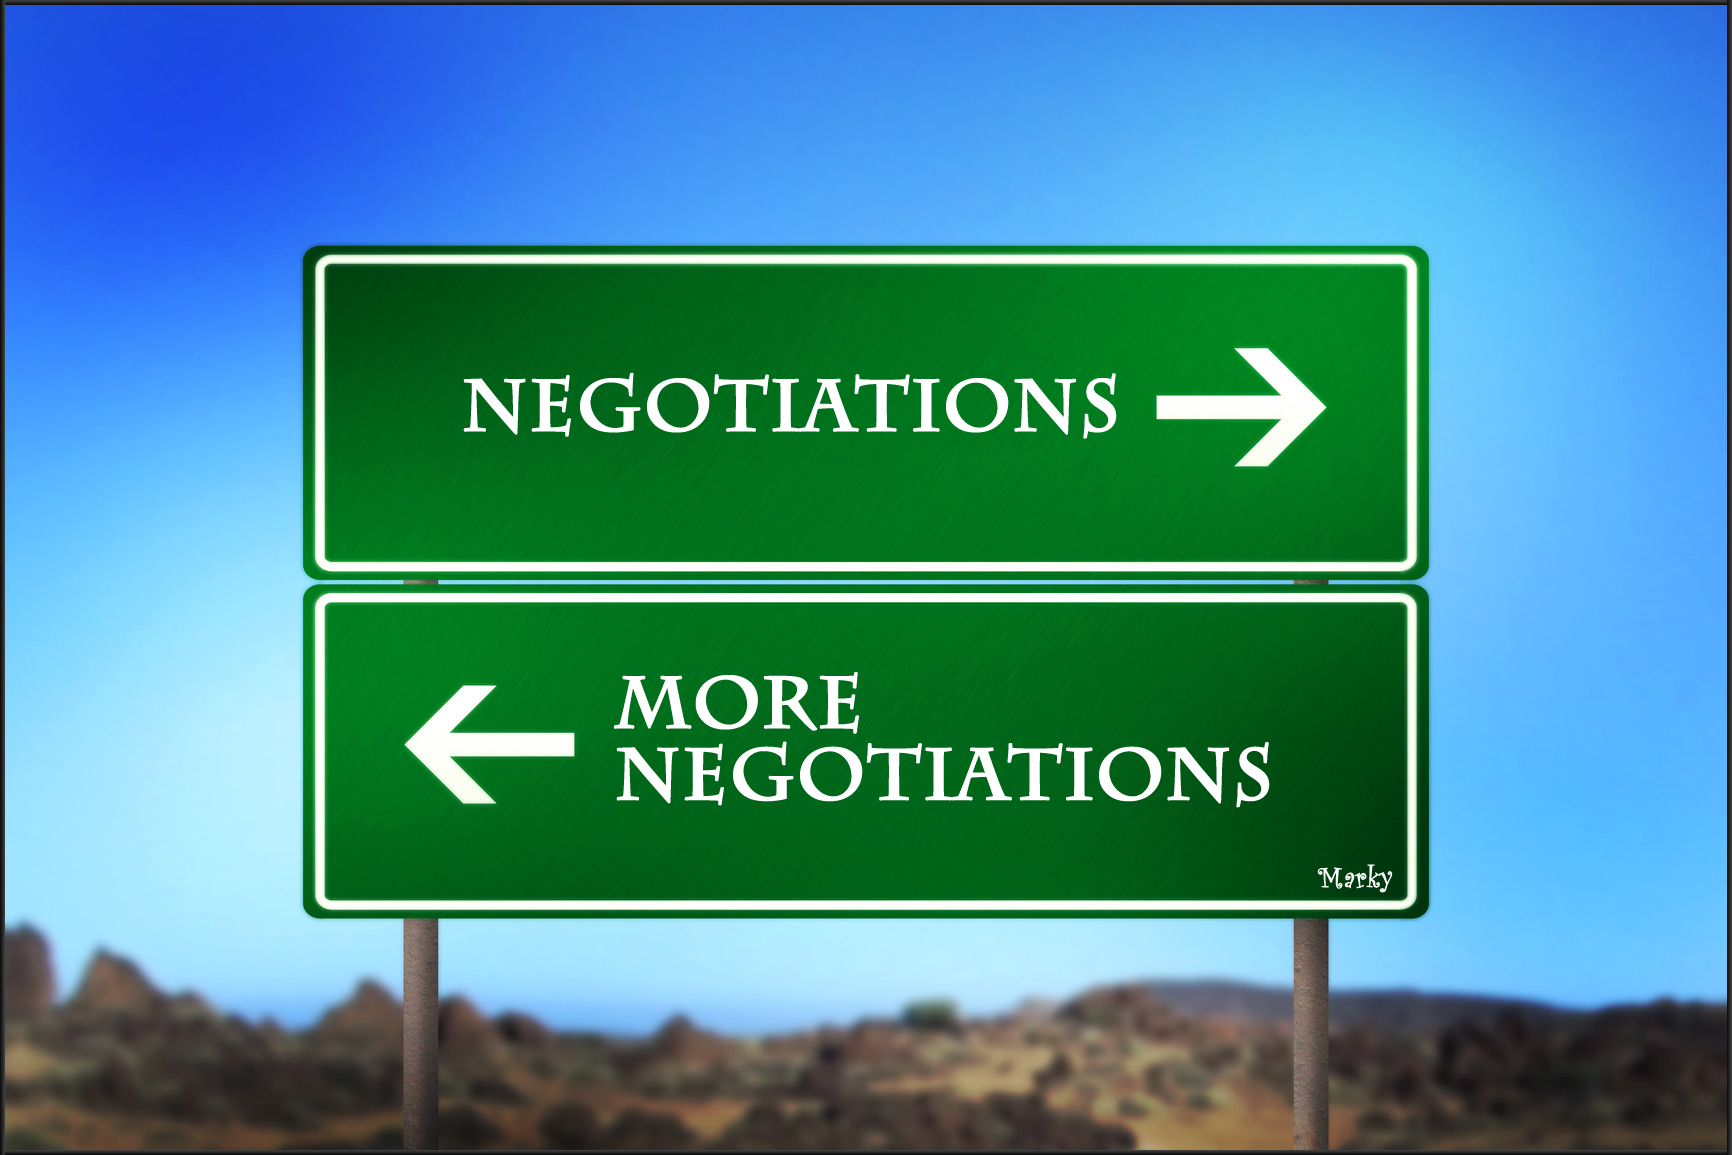 Road sign with arrows pointing and text that says negotiations and more negotiations